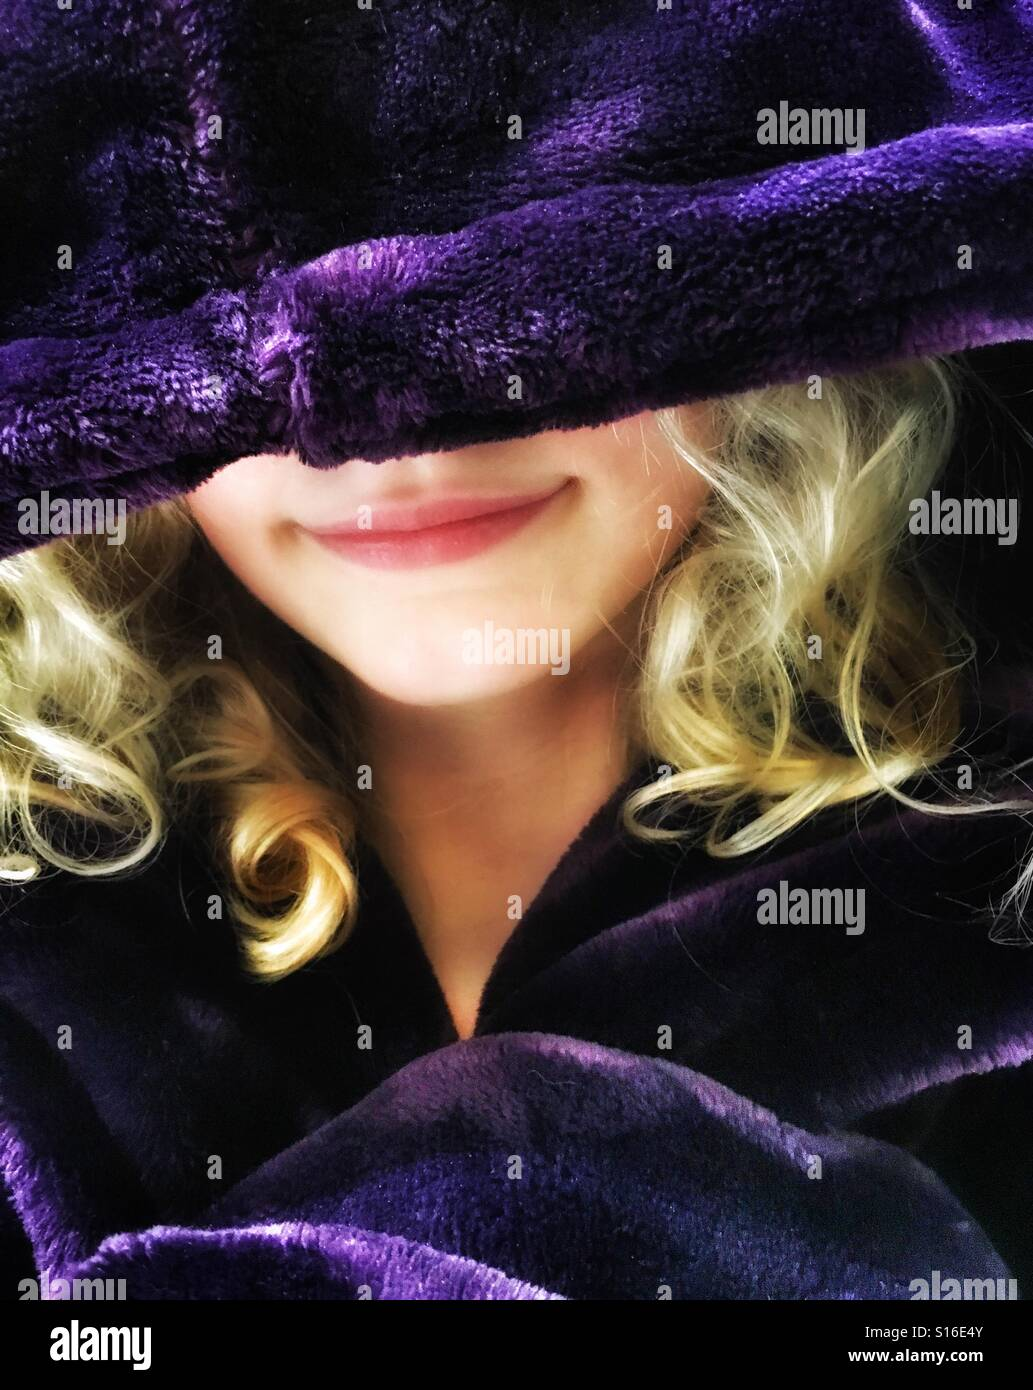 Girl snug in over sized purple dressing gown - Stock Image